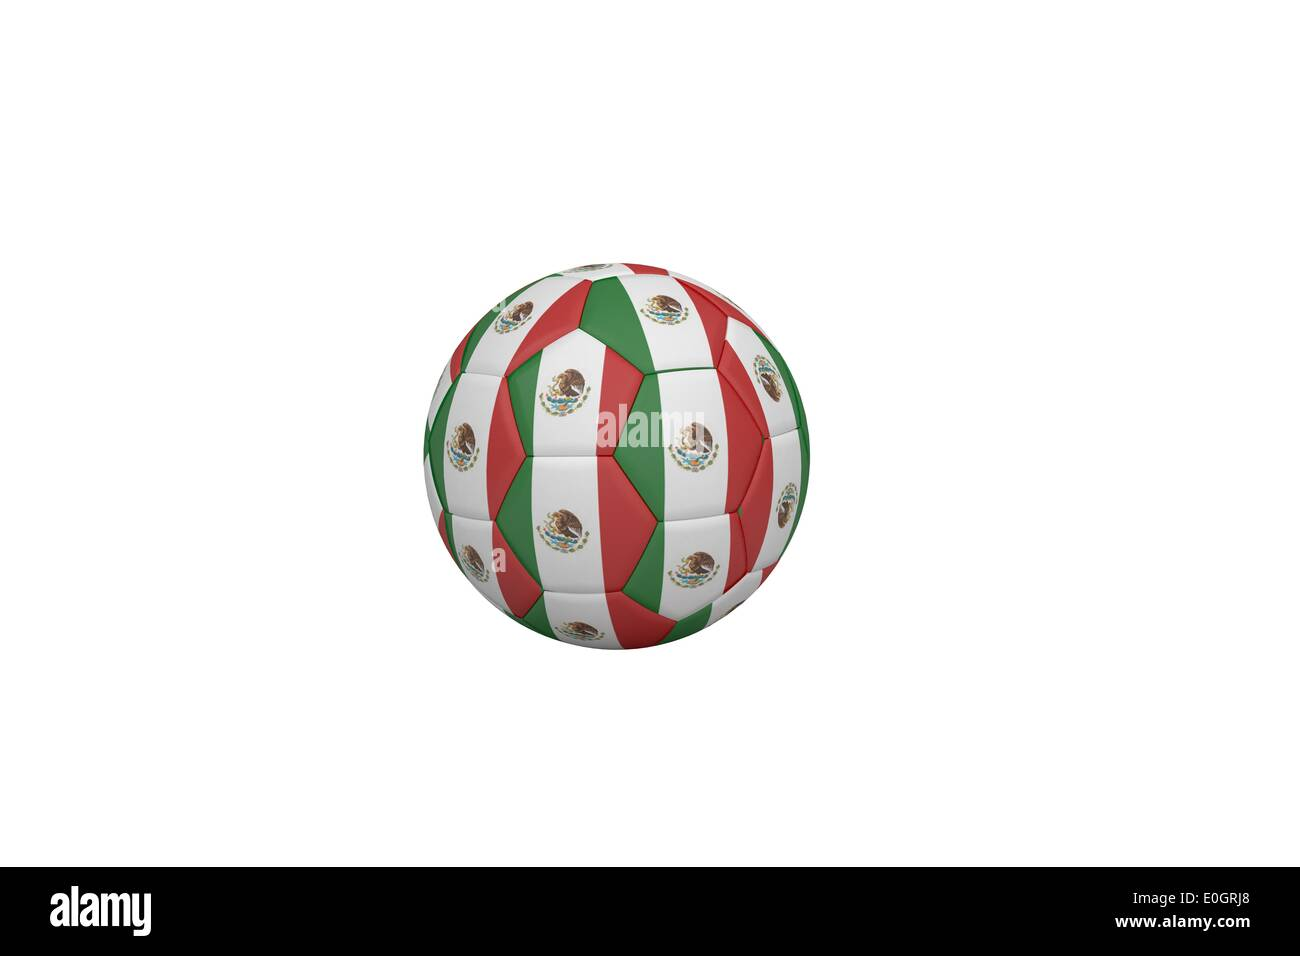 Football in mexico colours Stock Photo